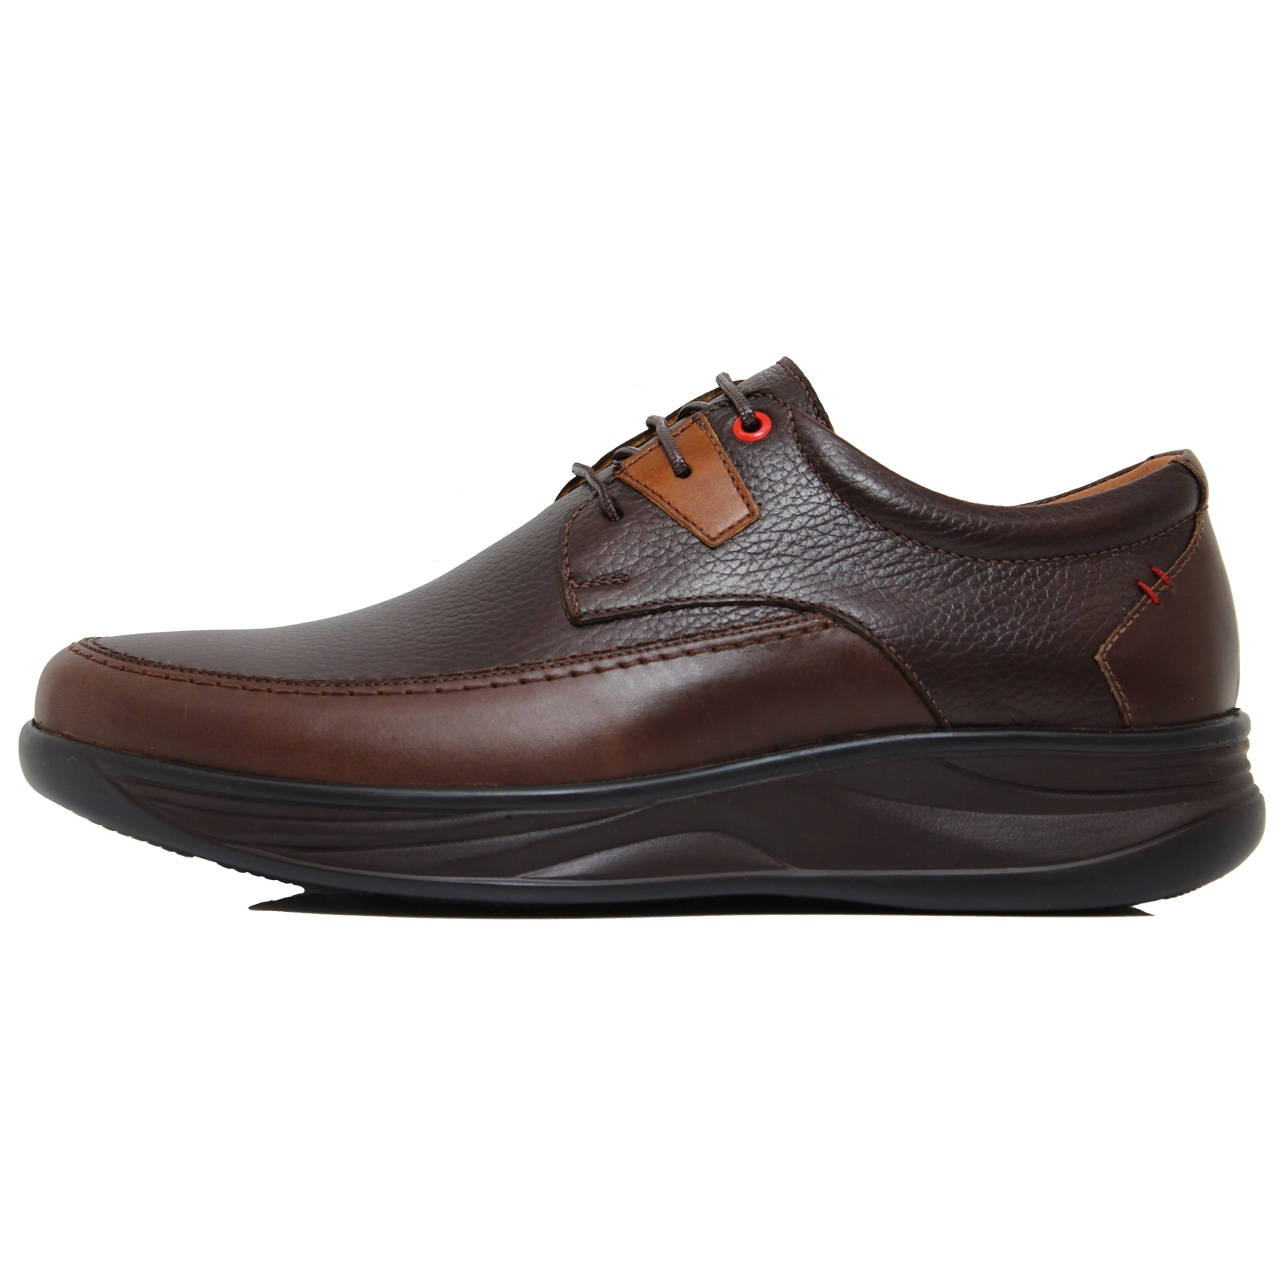 ZHEST men's leather shoes,  2032 Model